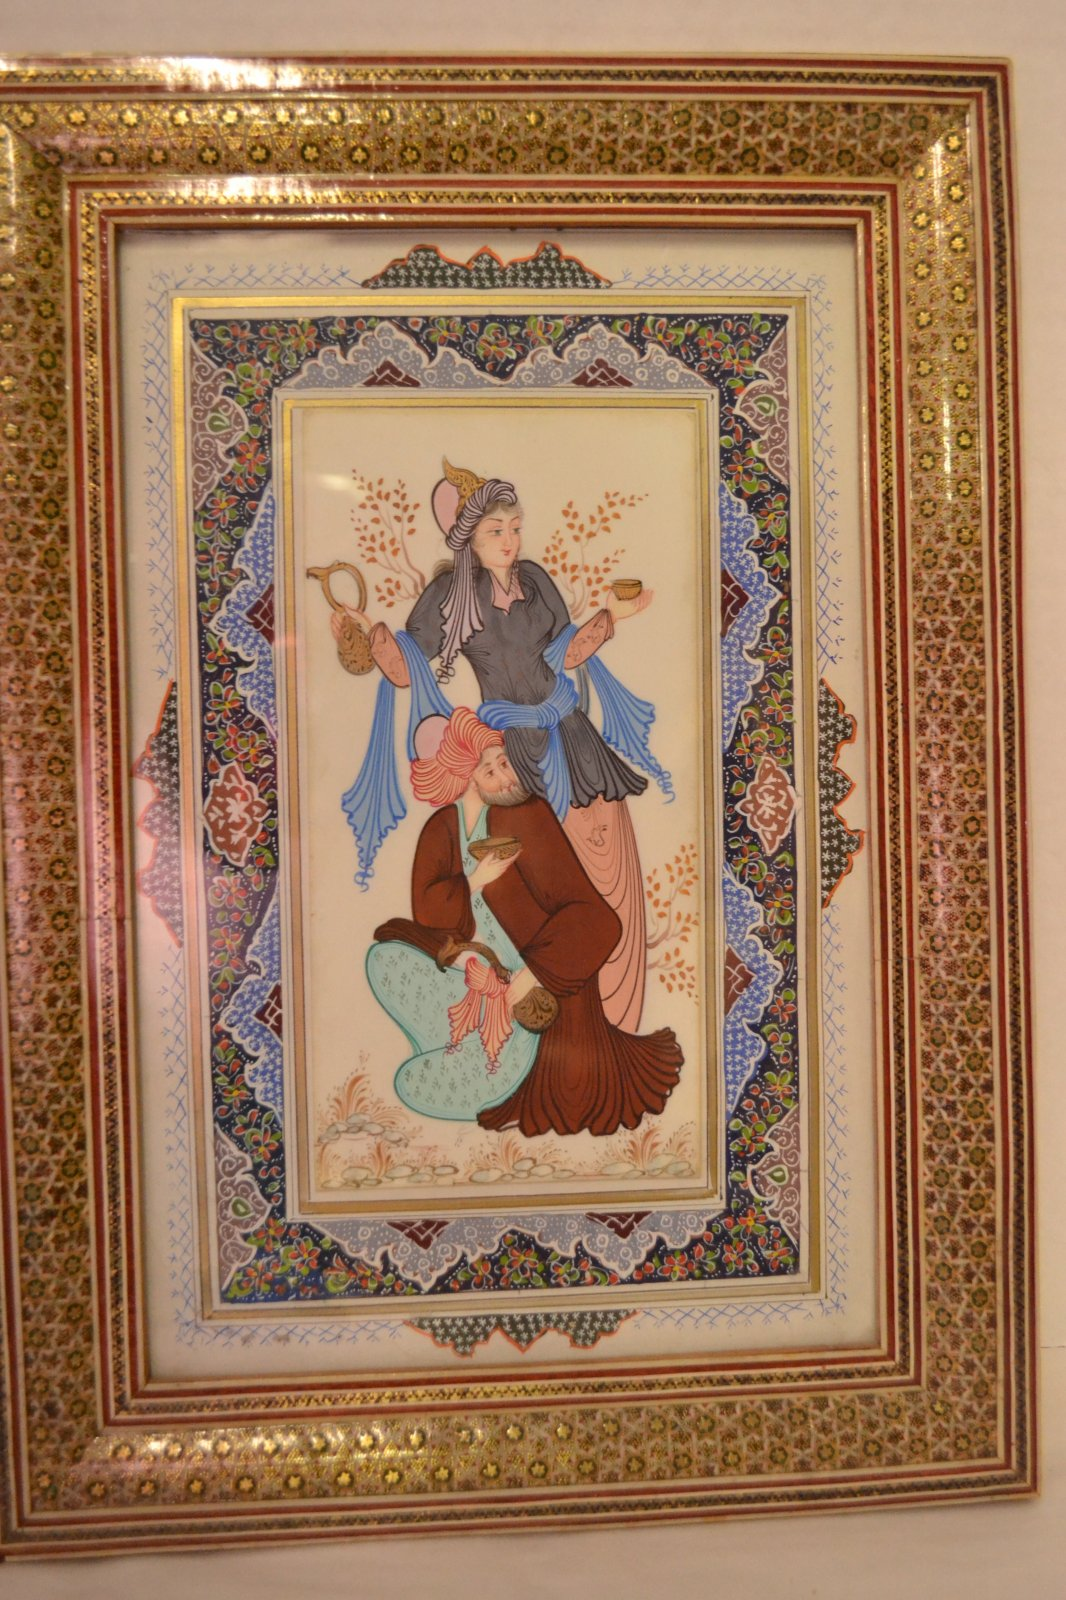 20th Century Middle Eastern Iranian miniature painting in a very finely inlayed frame